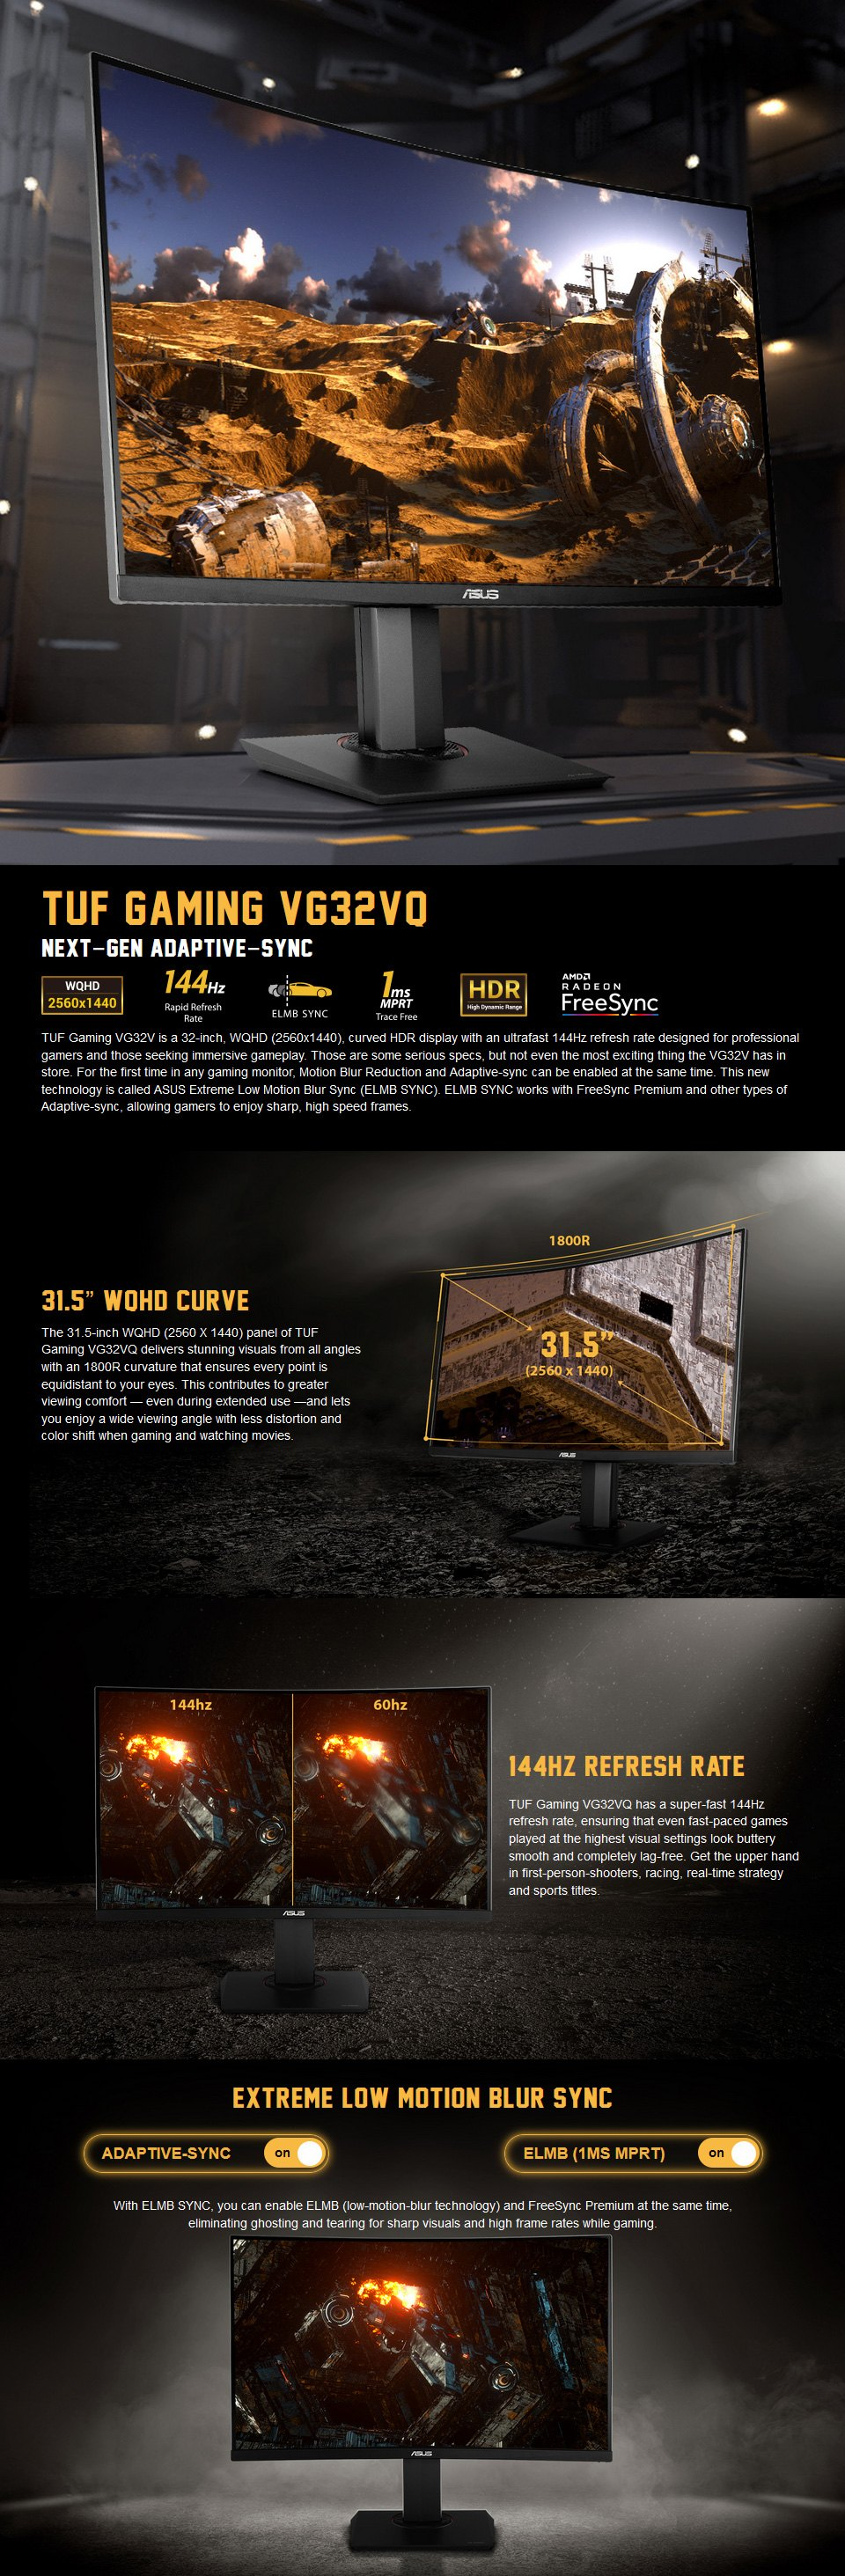 ASUS TUF VG32VQ 144hz Adaptive-Sync Curved 31.5in Monitor features